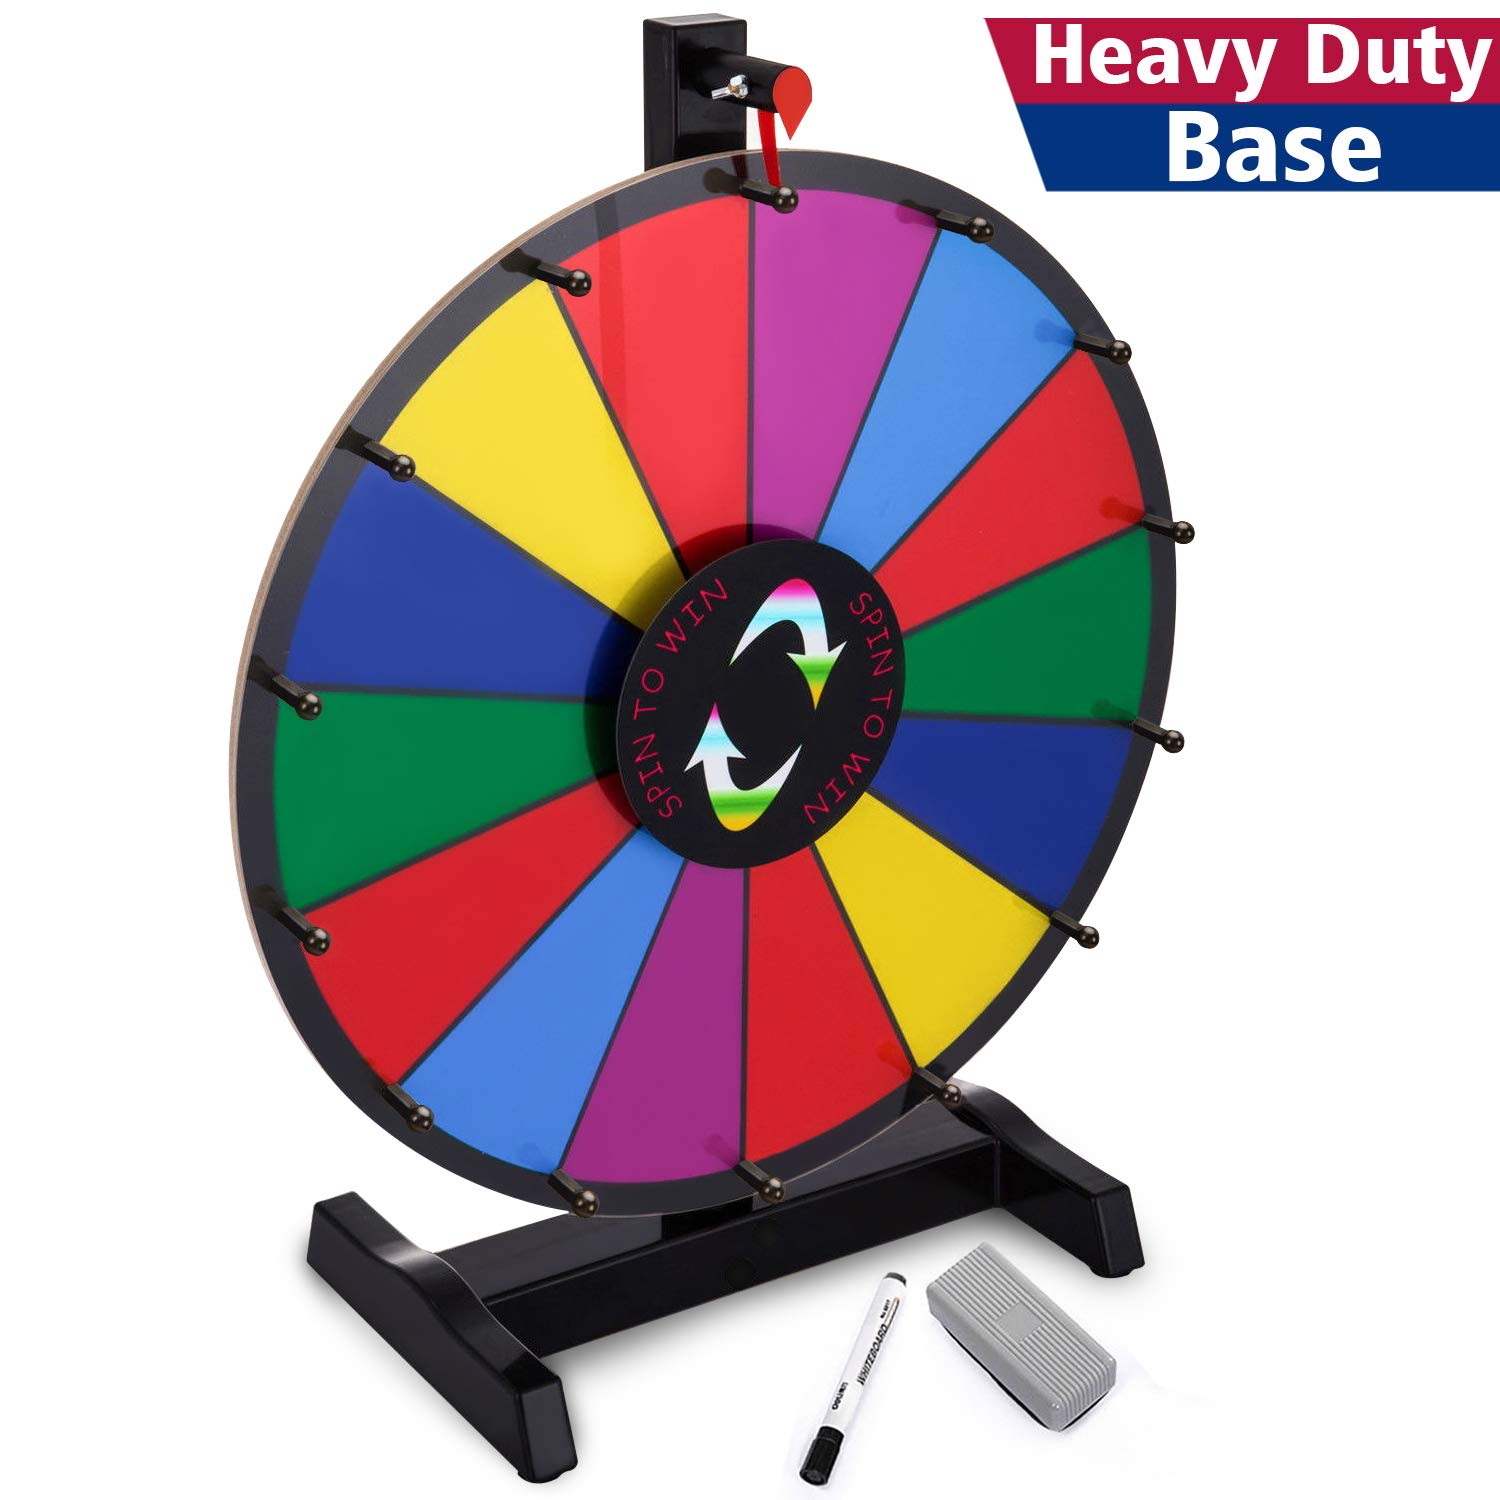 T-SIGN 18'' Heavy Duty Tabletop Spinning Prize Wheel, 14 Slots Color Prize Wheel Spinner with Dry Erase Marker & Eraser As Customized Gifts for Carnival and Trade Show, Win The Fortune Spin Game